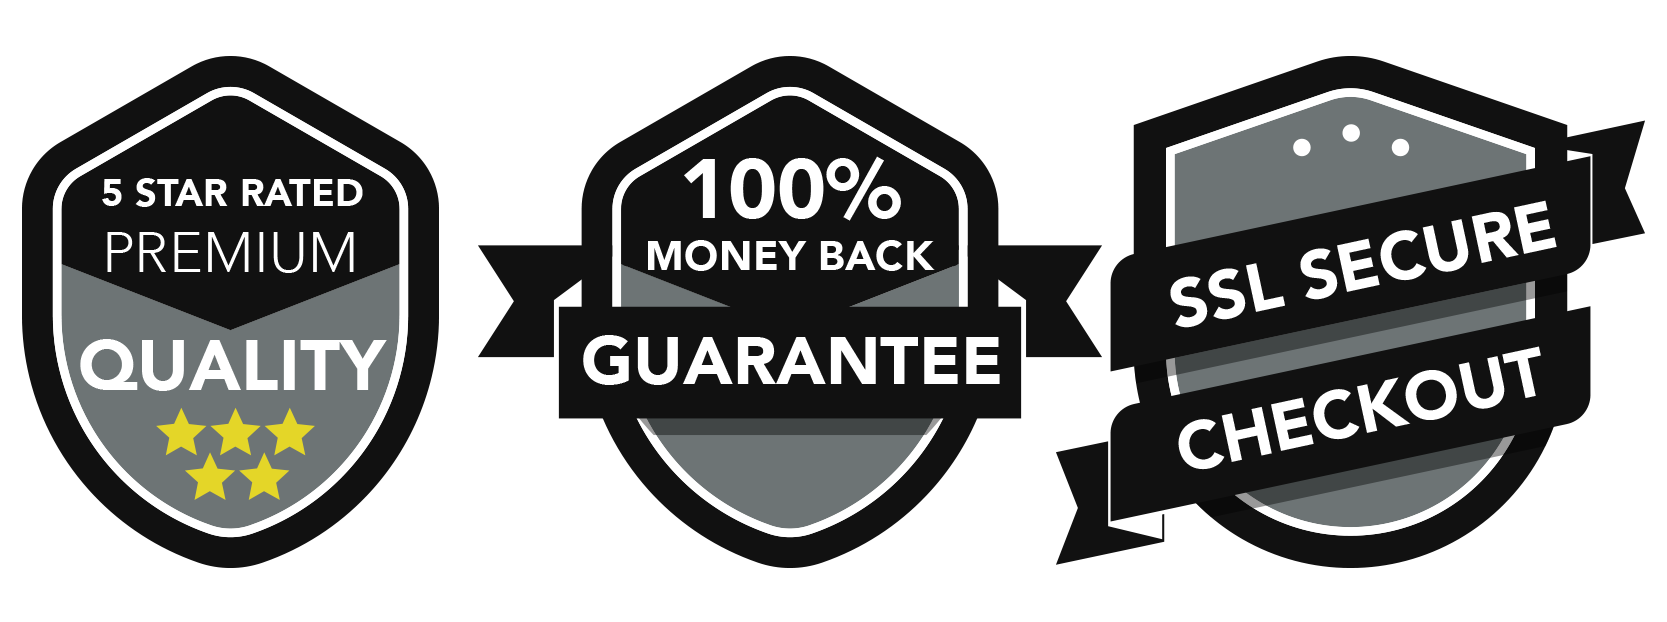 5 Star Rated Quality, Money Back Guarantee, SSL Secure Checkout